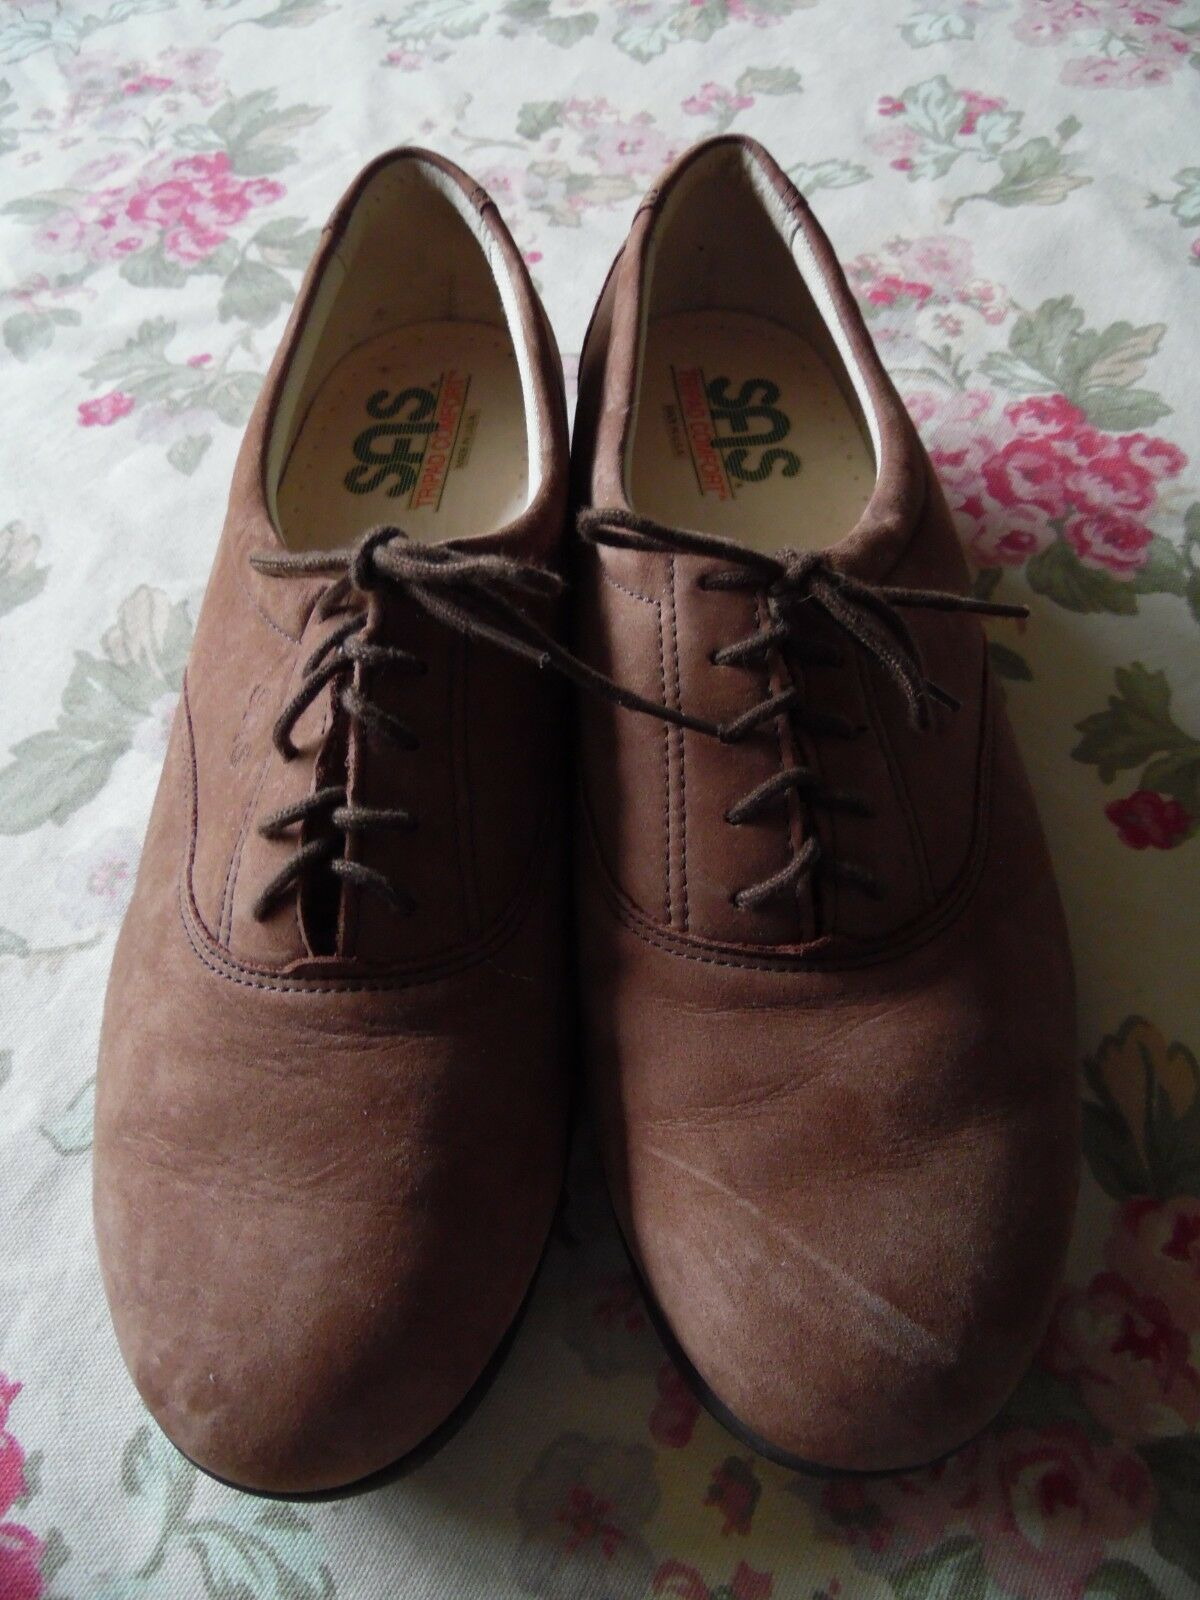 SAS Women's Brown Suede Suede Suede Tripad Comfort Casual Lace Up shoes Size 10(M) Made USA d7a65a